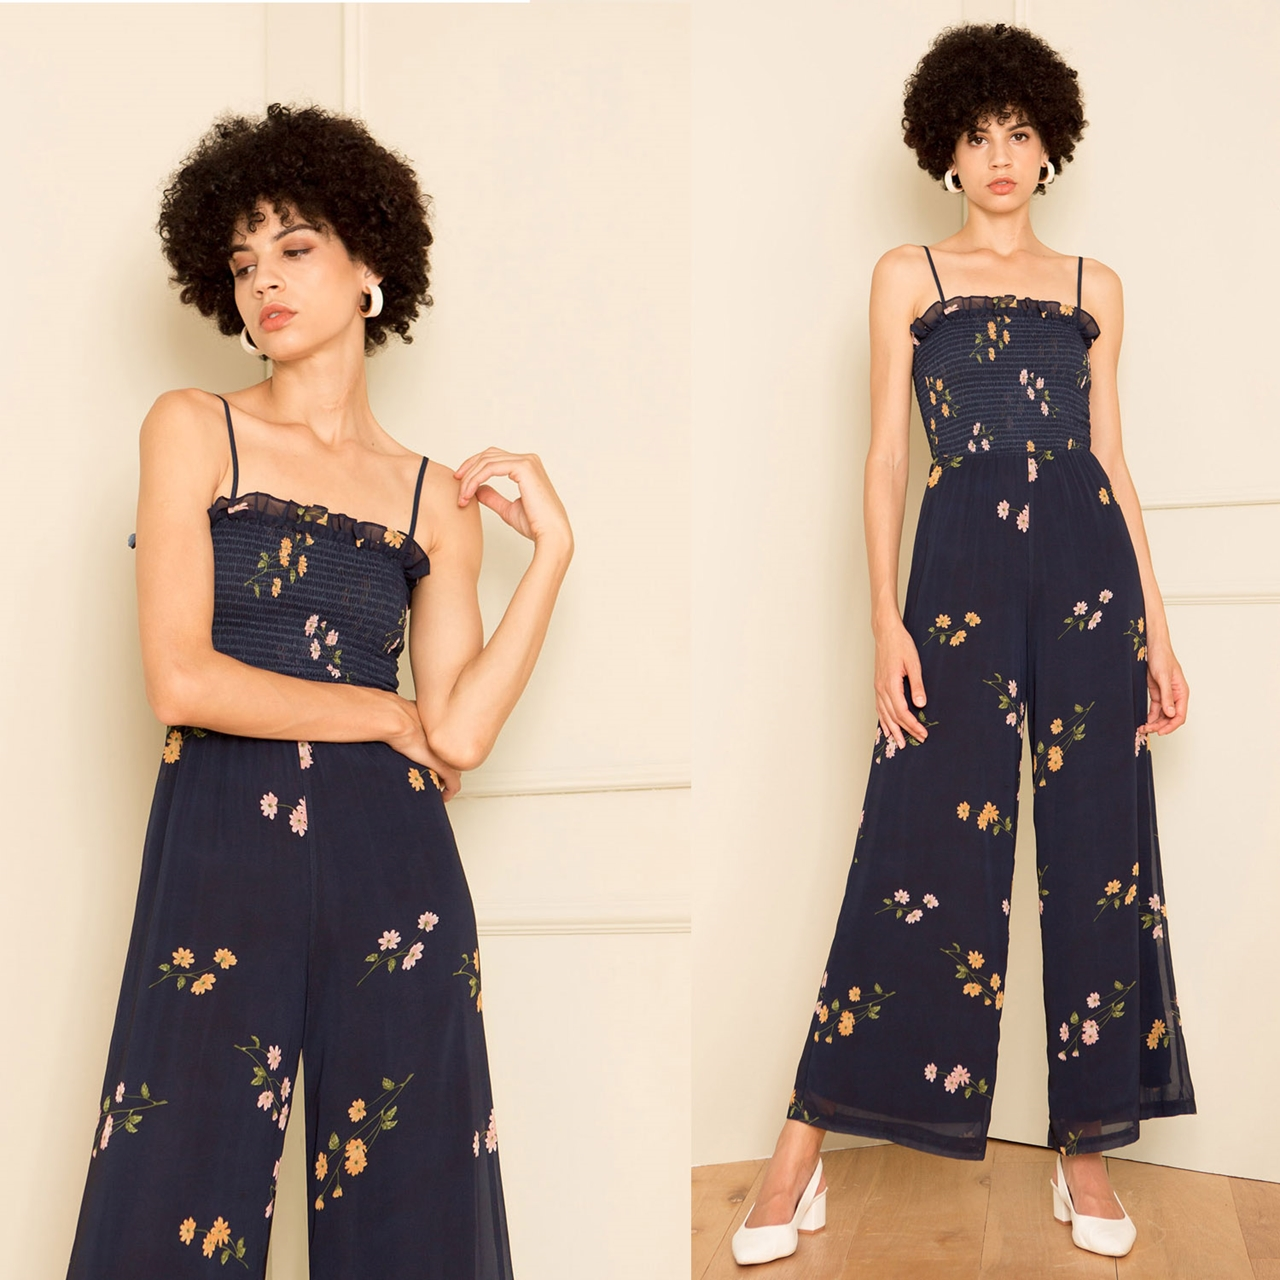 61ee18be7f5a6 Doublewoot Online Fashion Store | Malaysia Leading Online Fashion ...